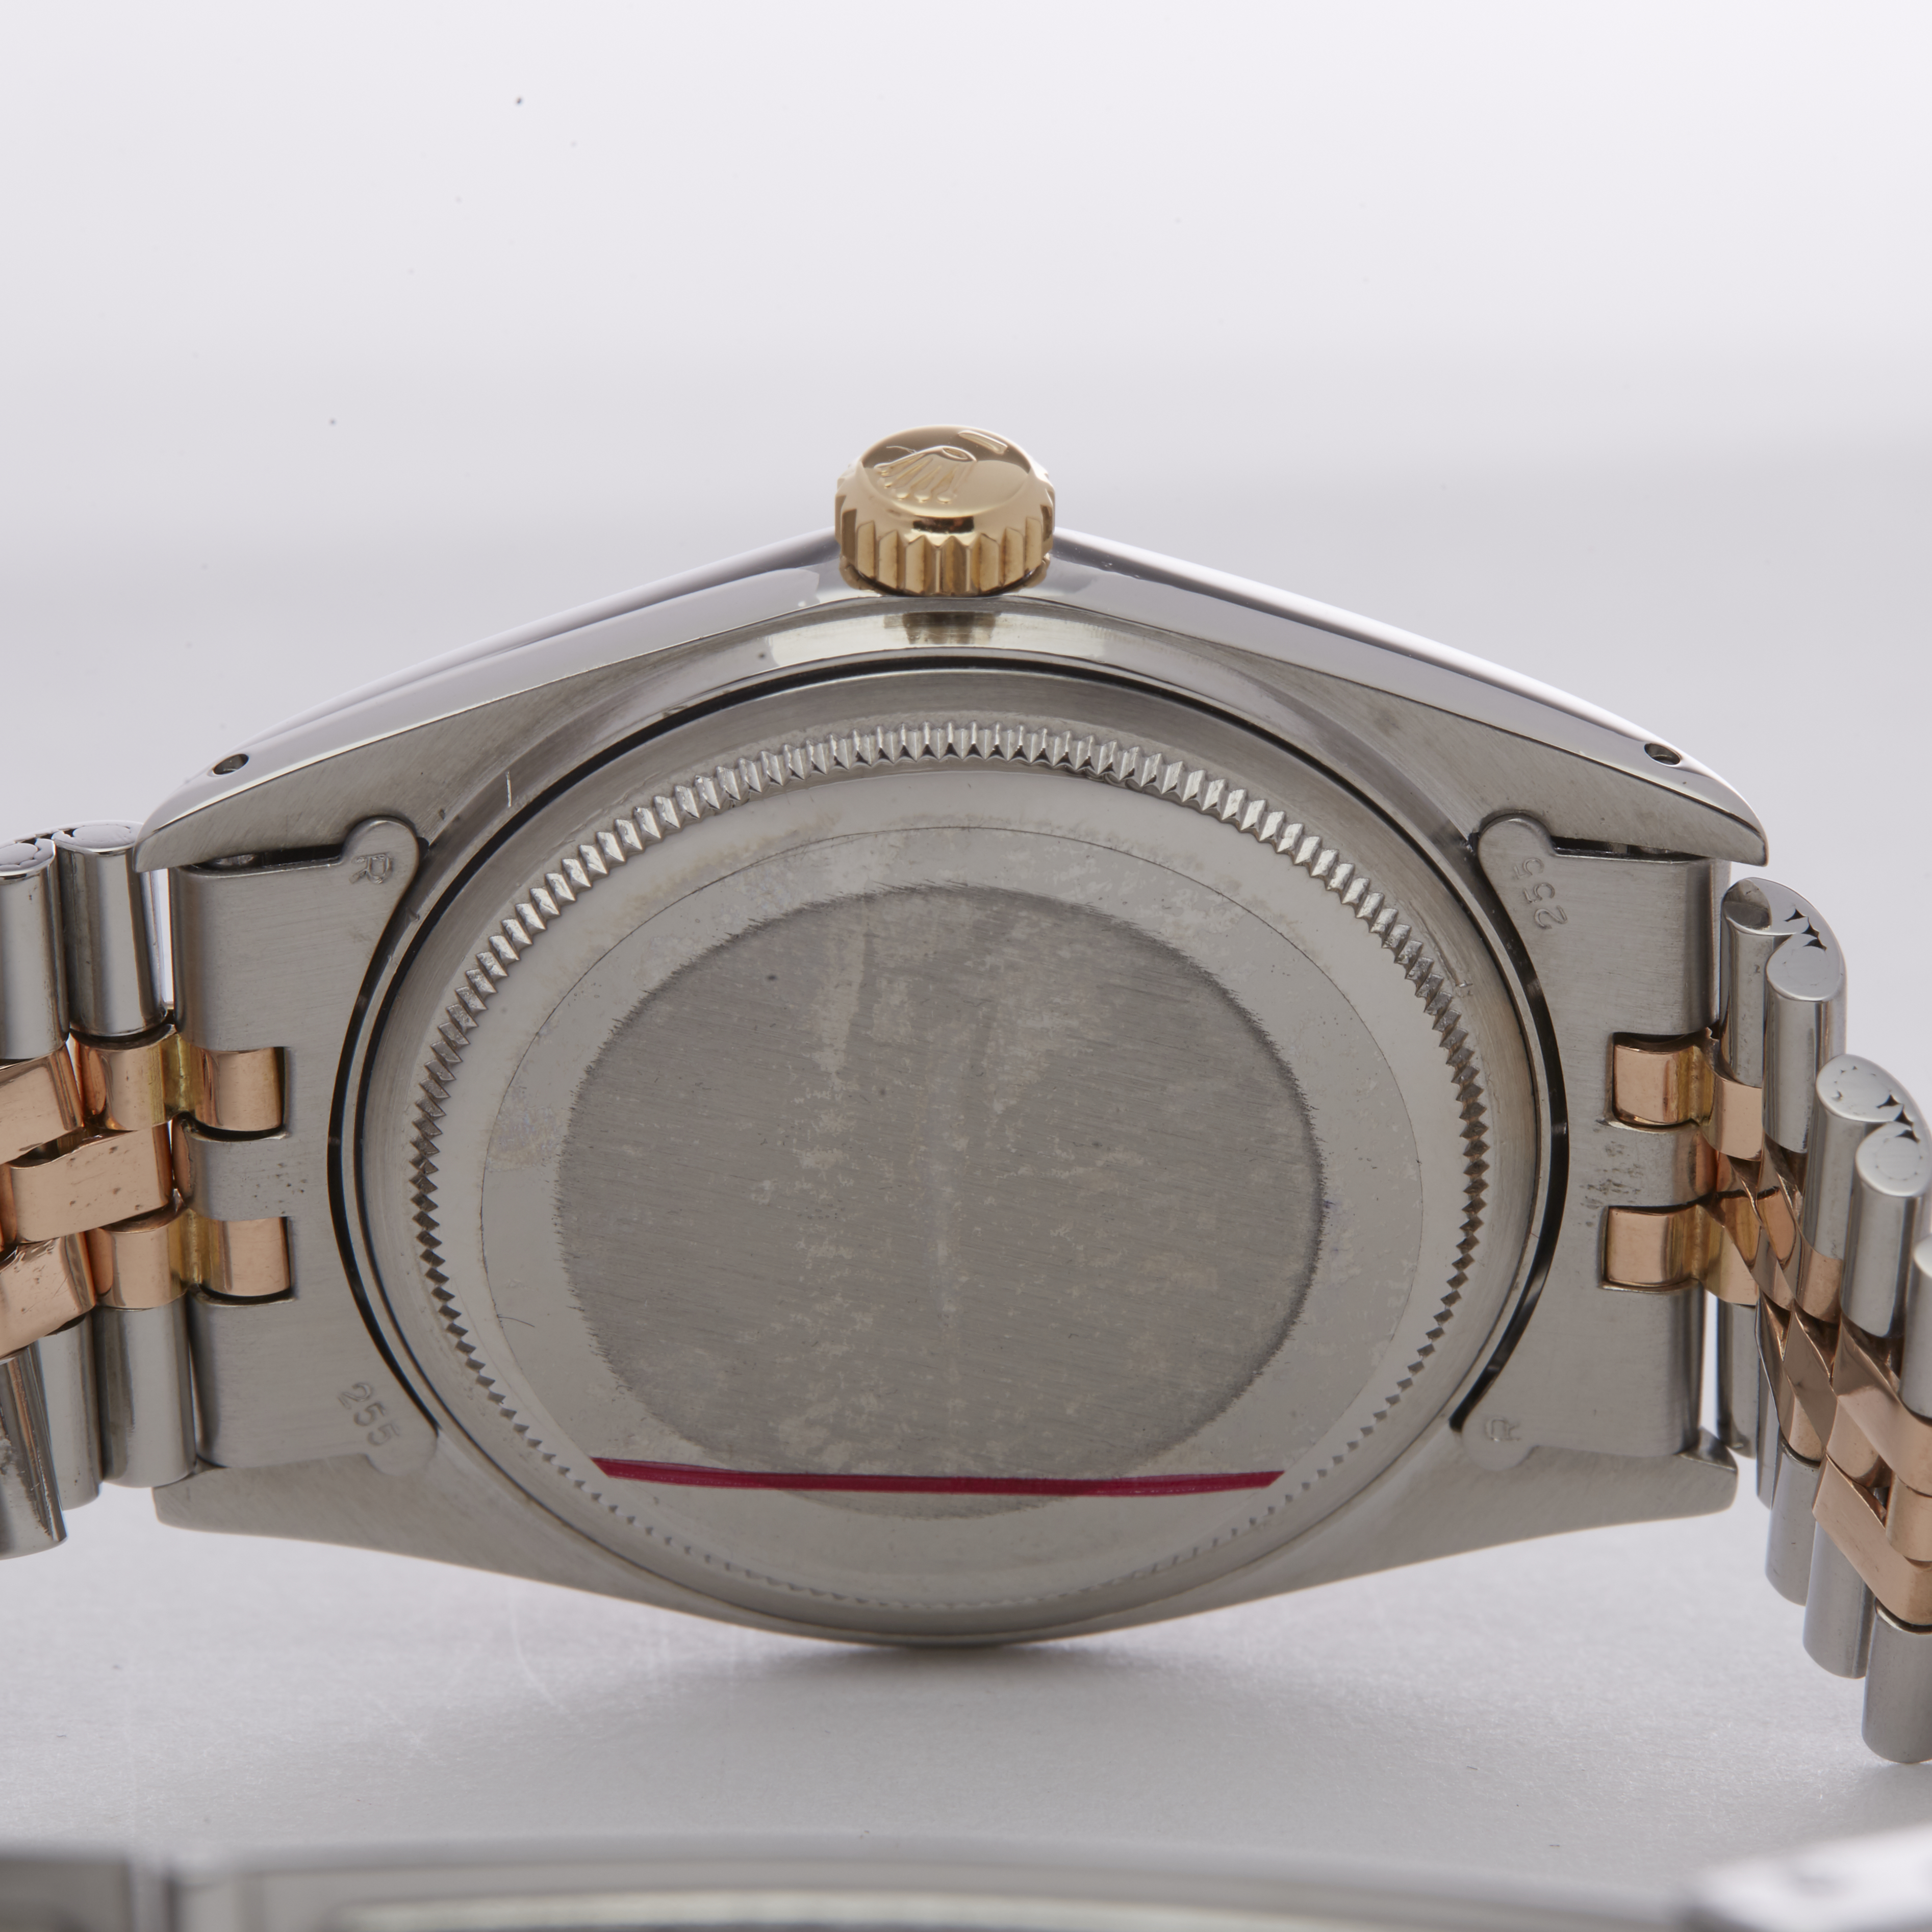 Rolex Datejust 36 1601 Men Rose Gold & Stainless Steel Watch - Image 2 of 6